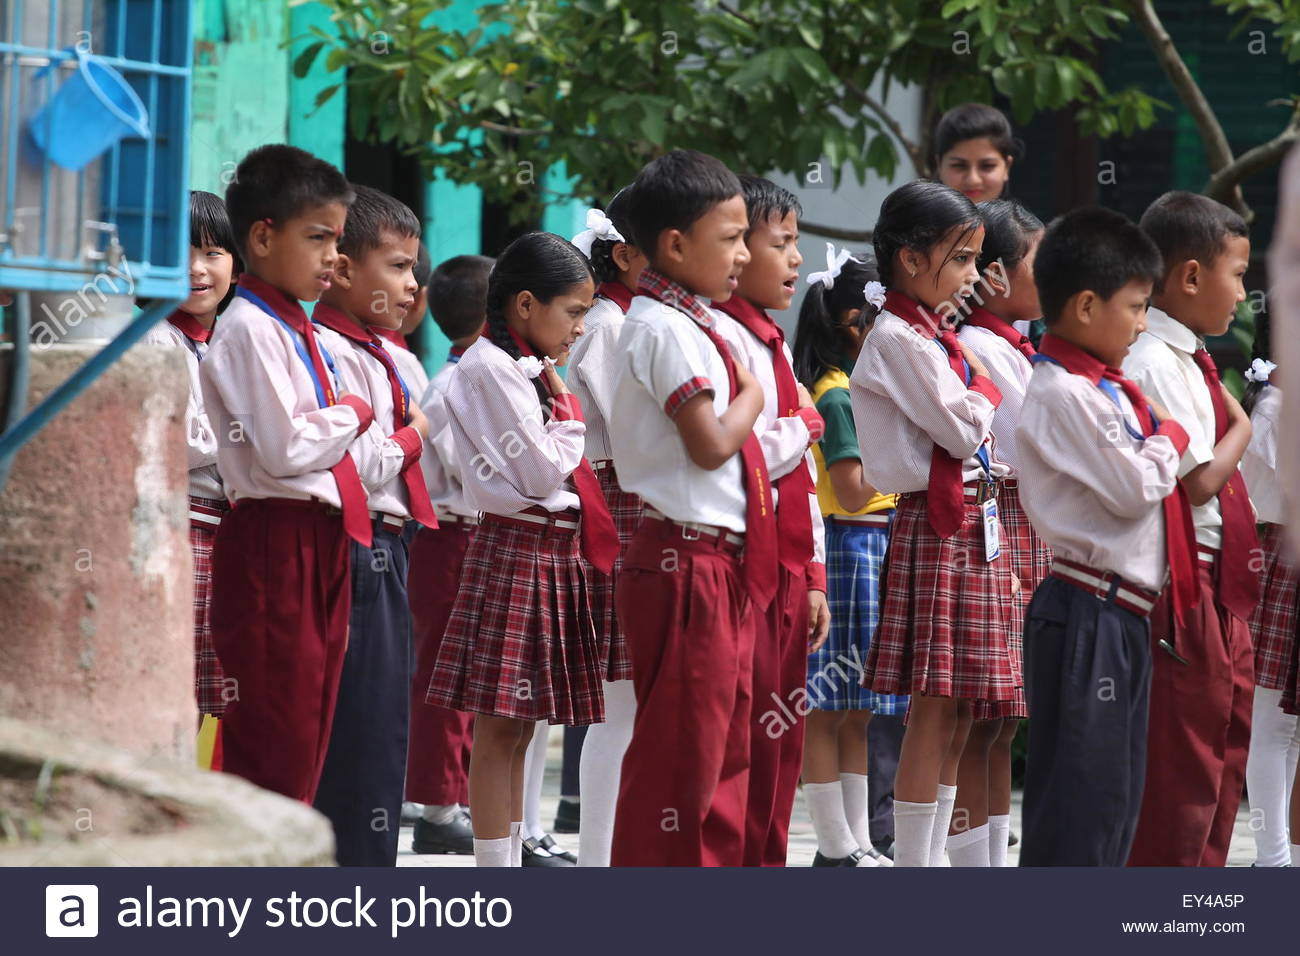 Bhaktapur, Nepal. July 20th, 2015. NEPAL, Bhaktapur:  Young children say morning prayer at Candid International - Stock Image